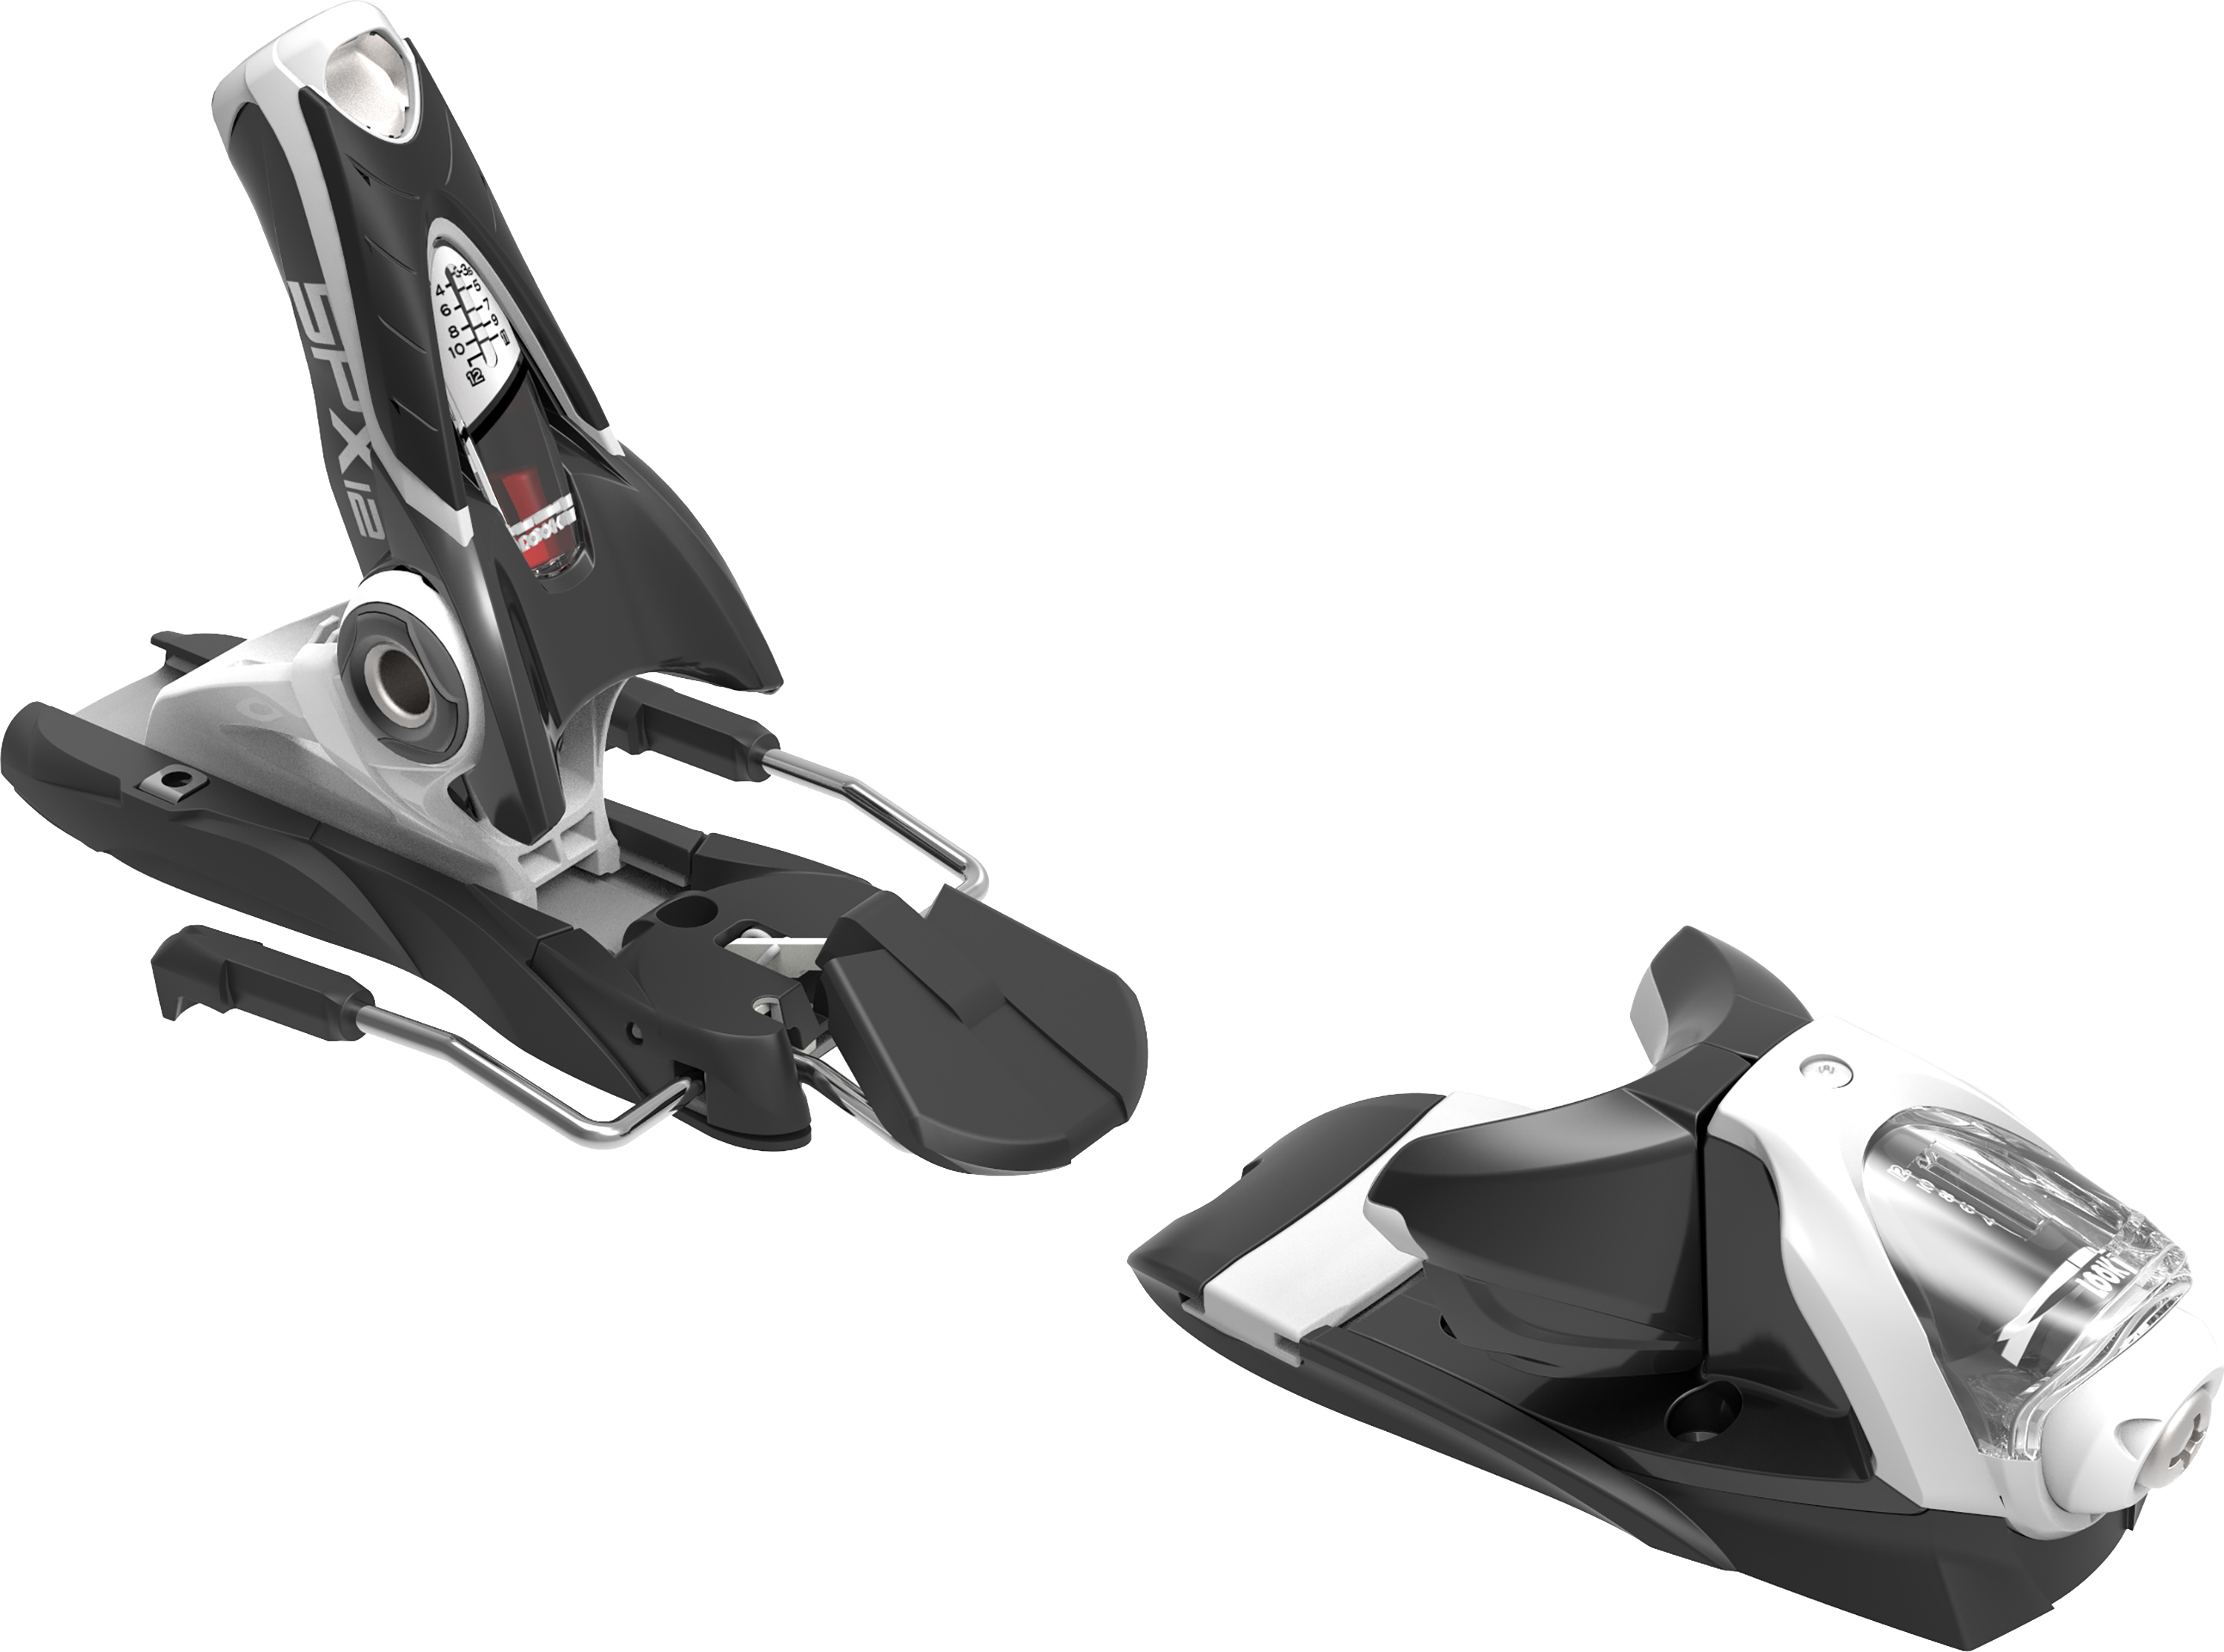 ce1b713d4fa4 Downhill ski bindings